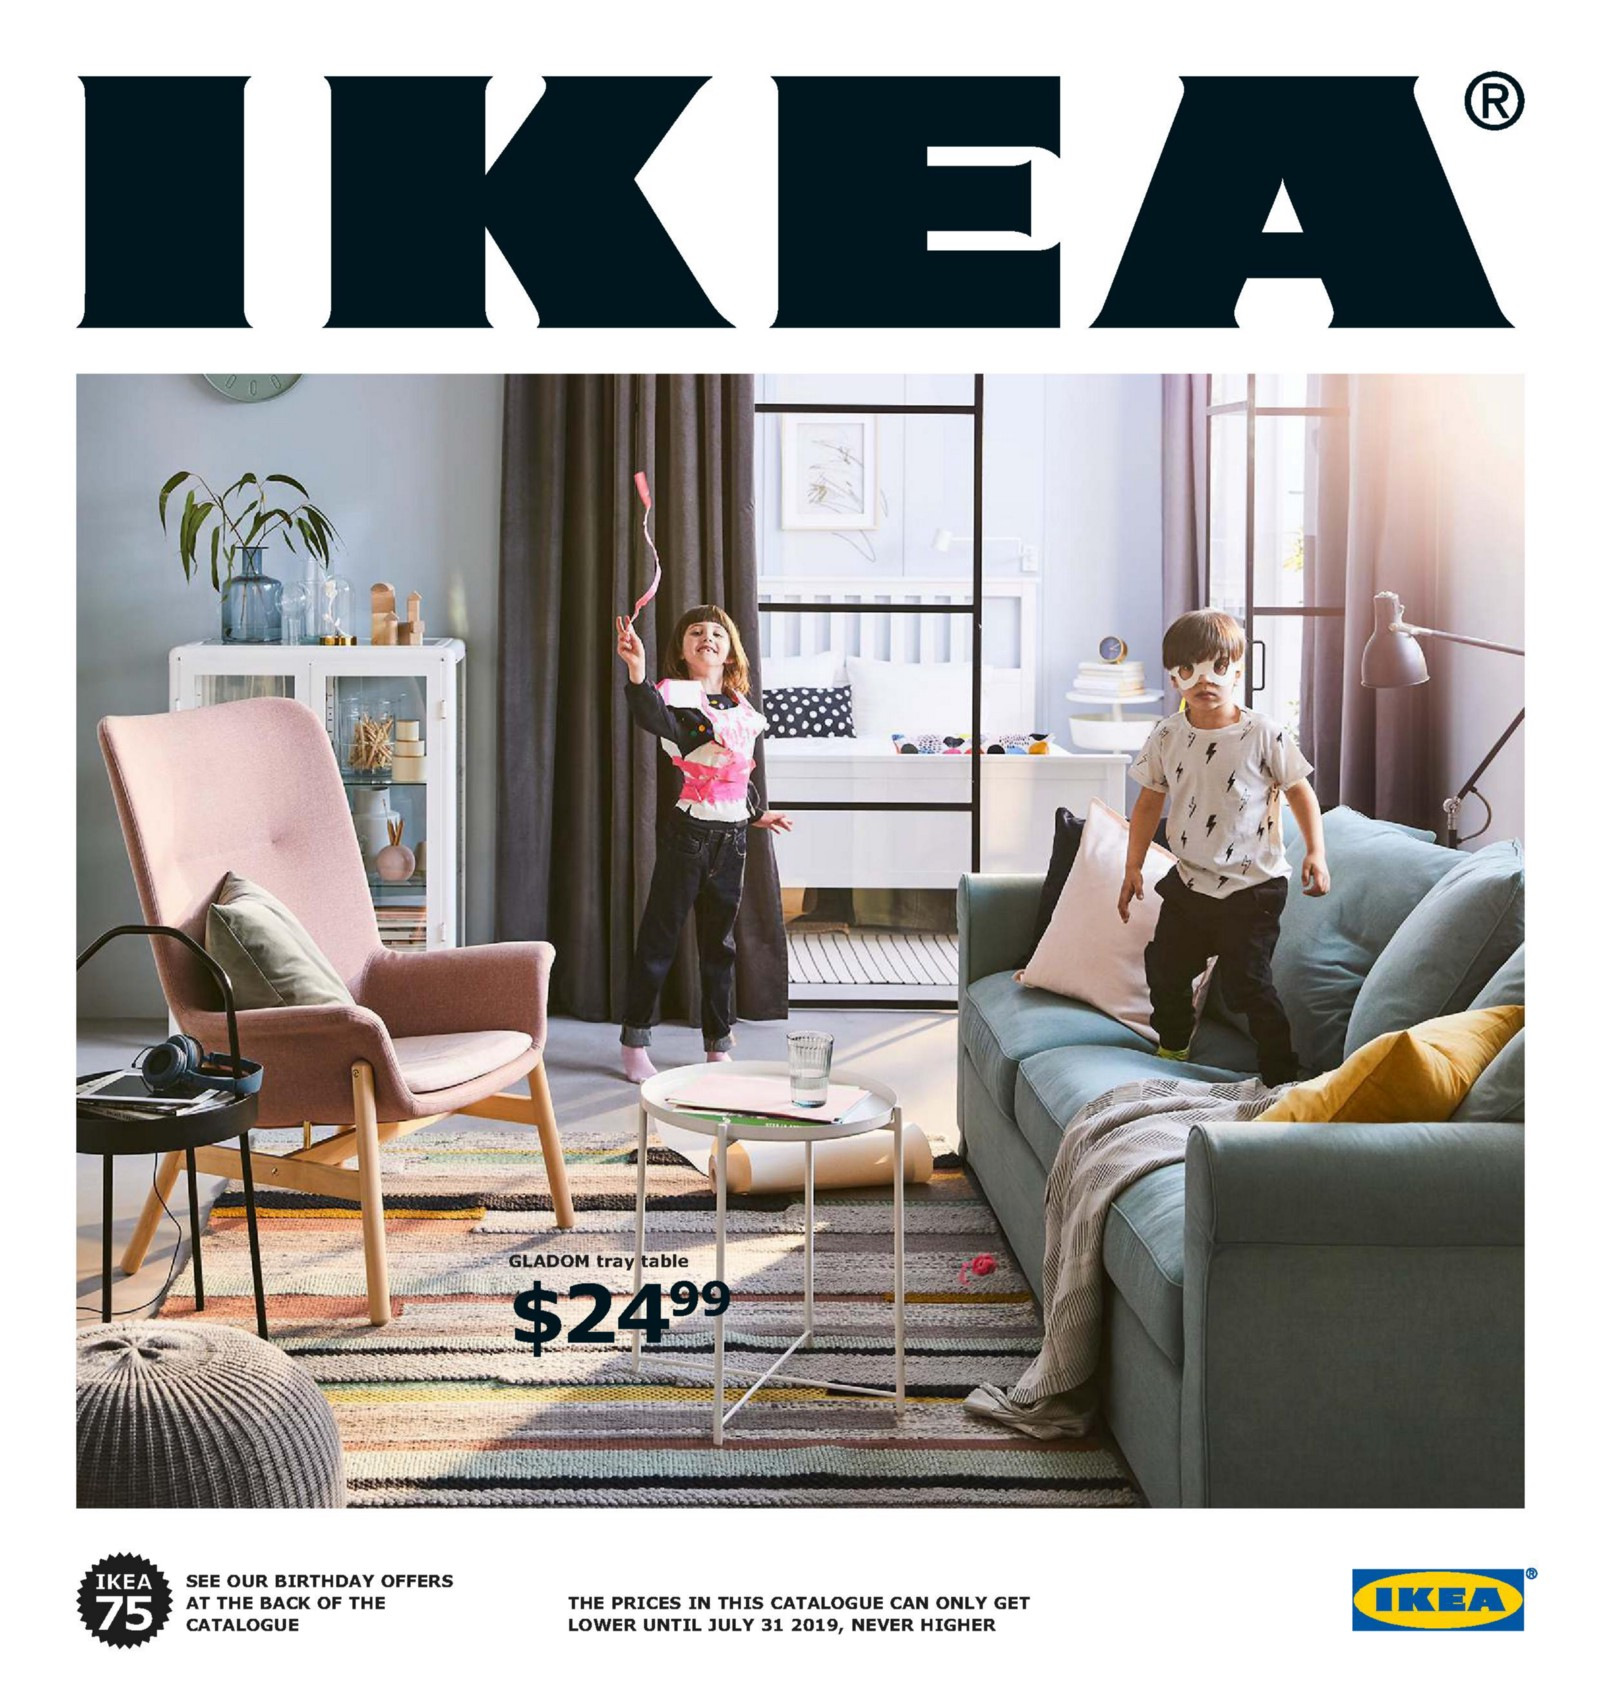 Balance Cuisine Ikea How Ikea Allows Us To Dream Reviewing The 2019 Ikea Canada Catalogue